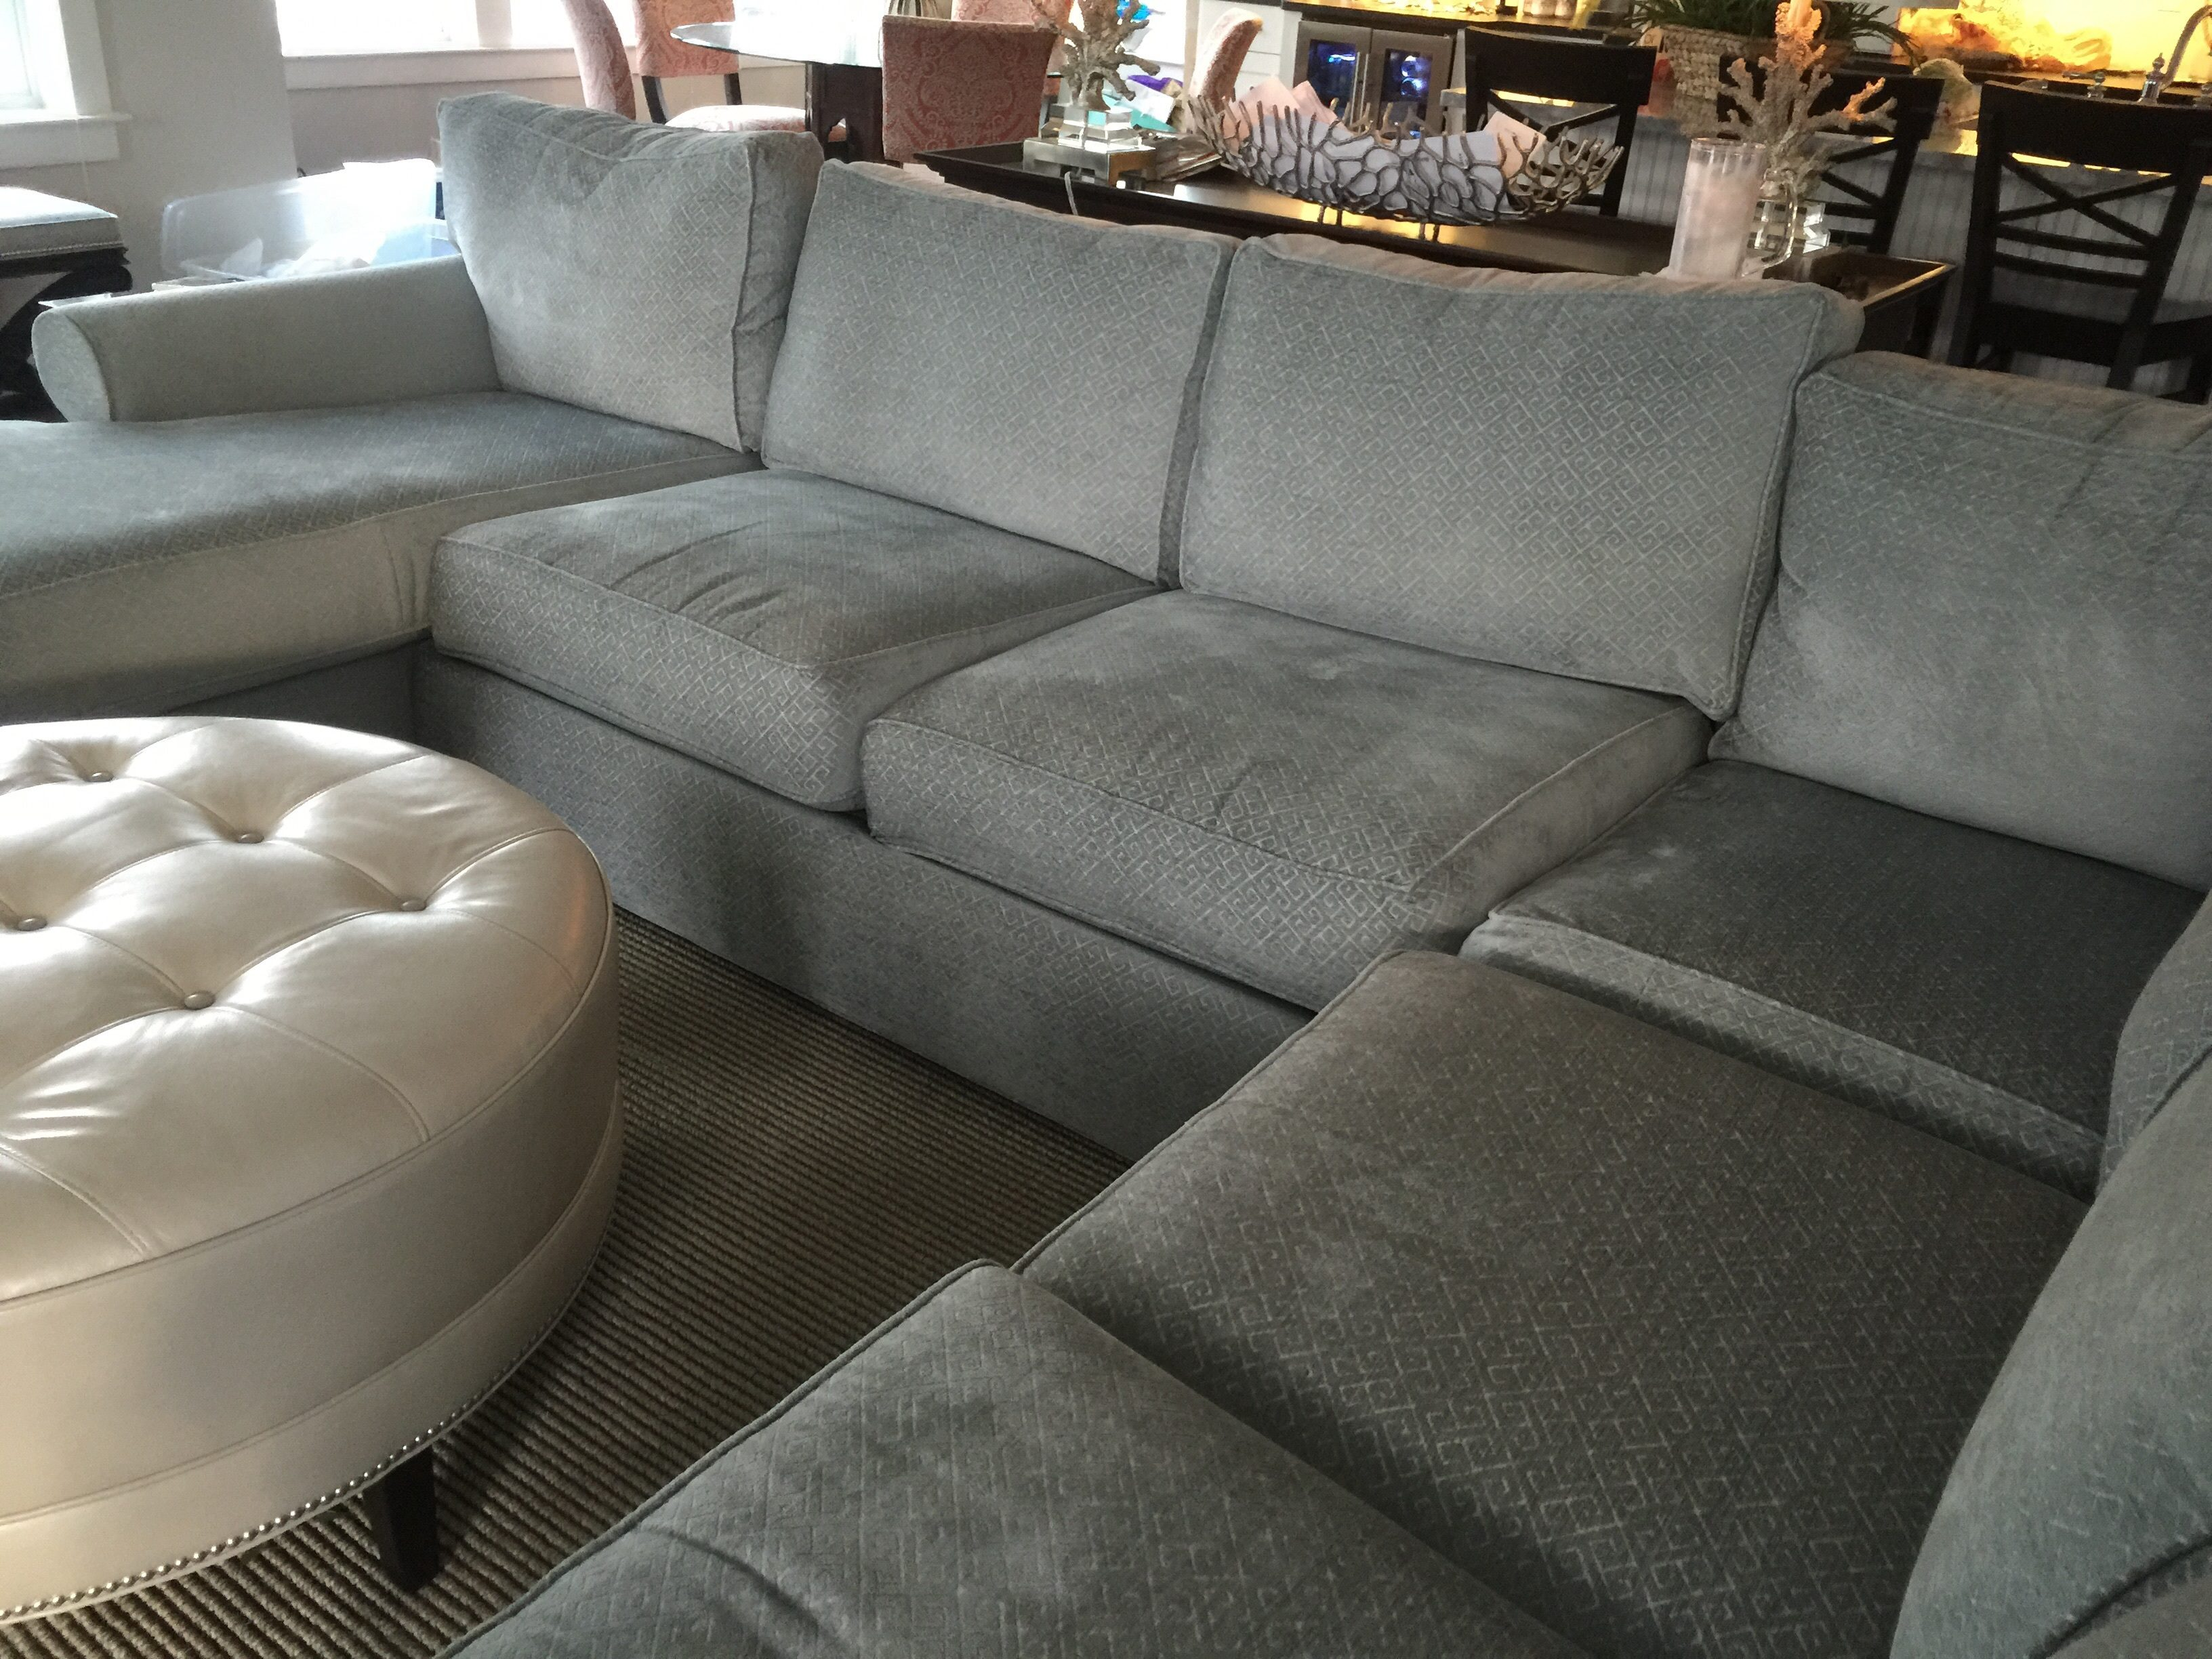 Furniture & Rug Ethan Allen Recliners